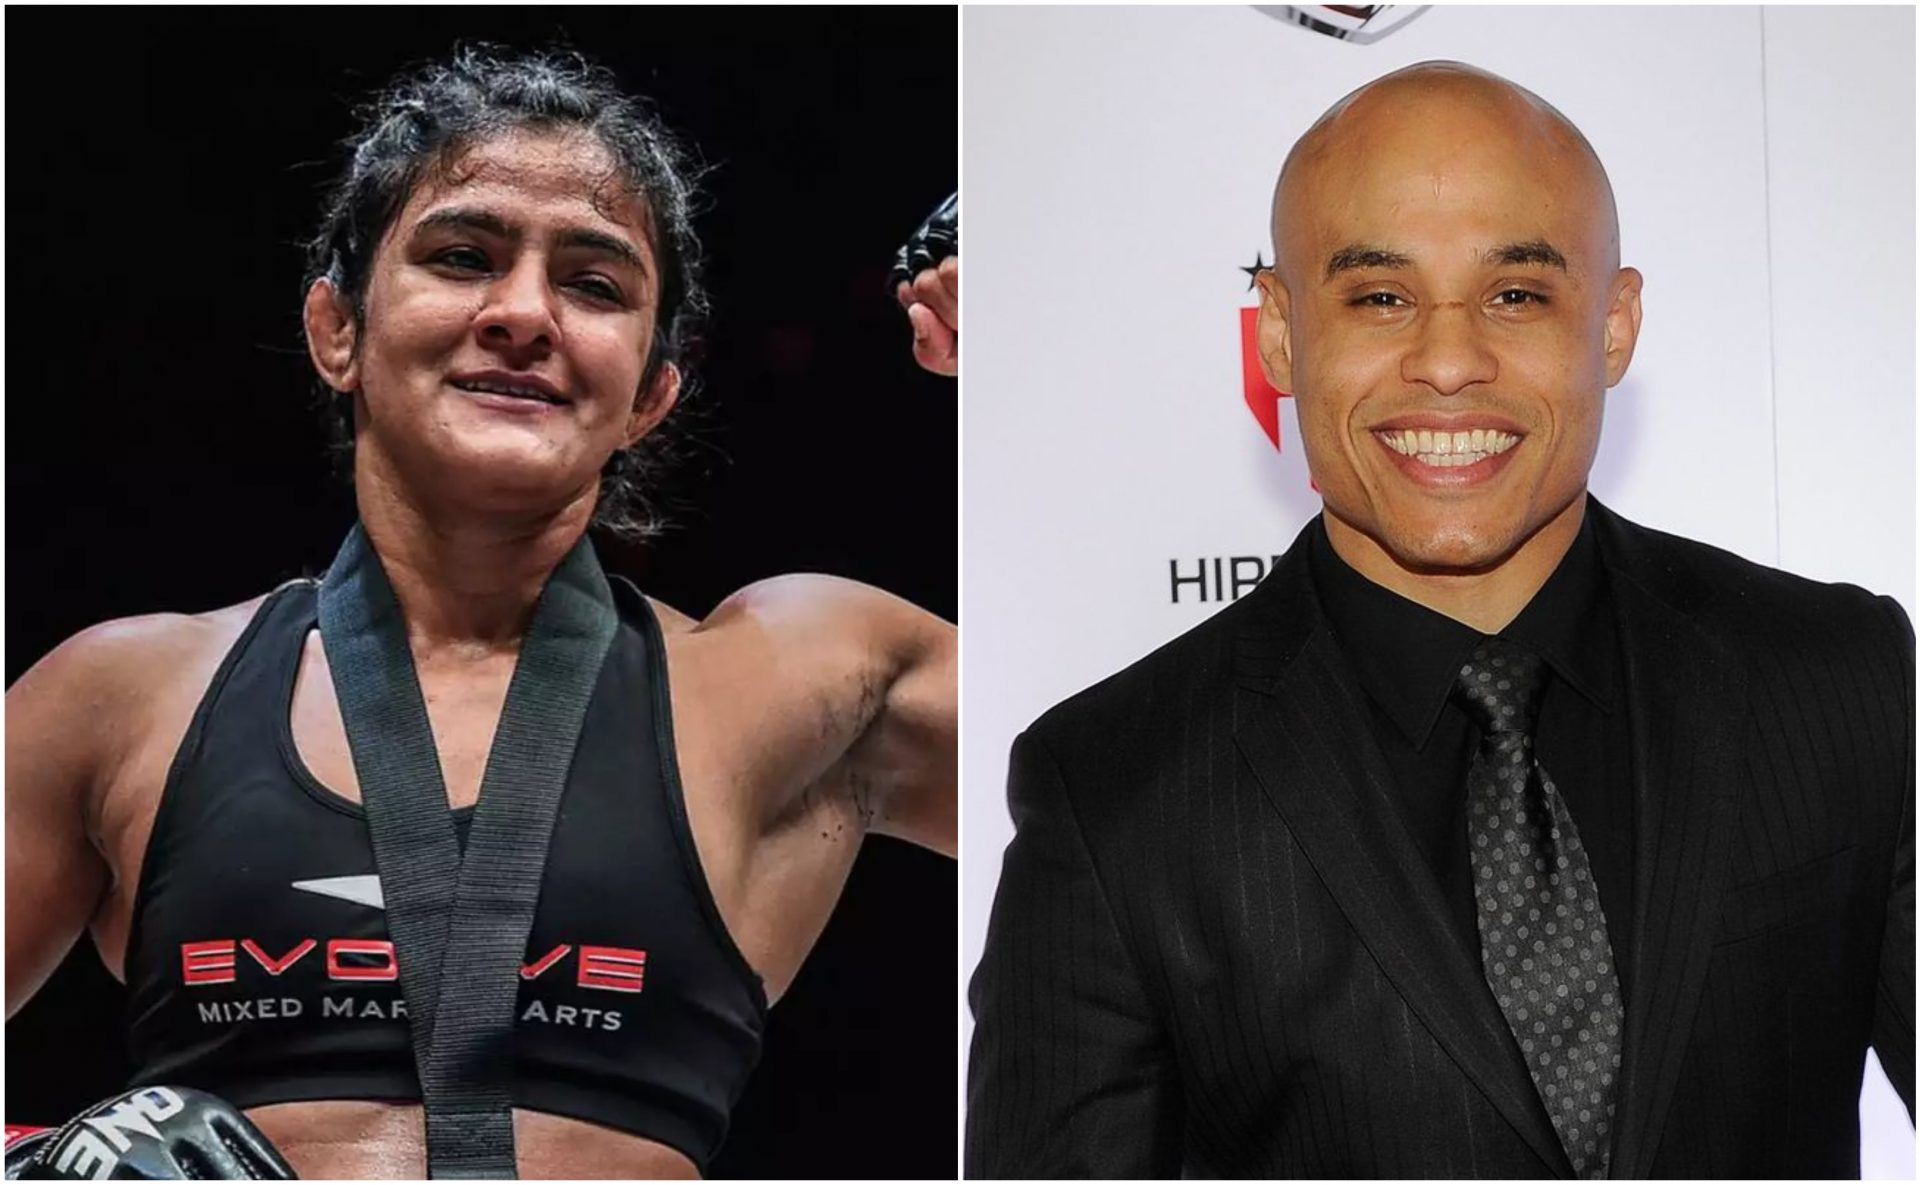 Ritu Phogat can be a world champion: Ali Abdelaziz - Ritu Phogat